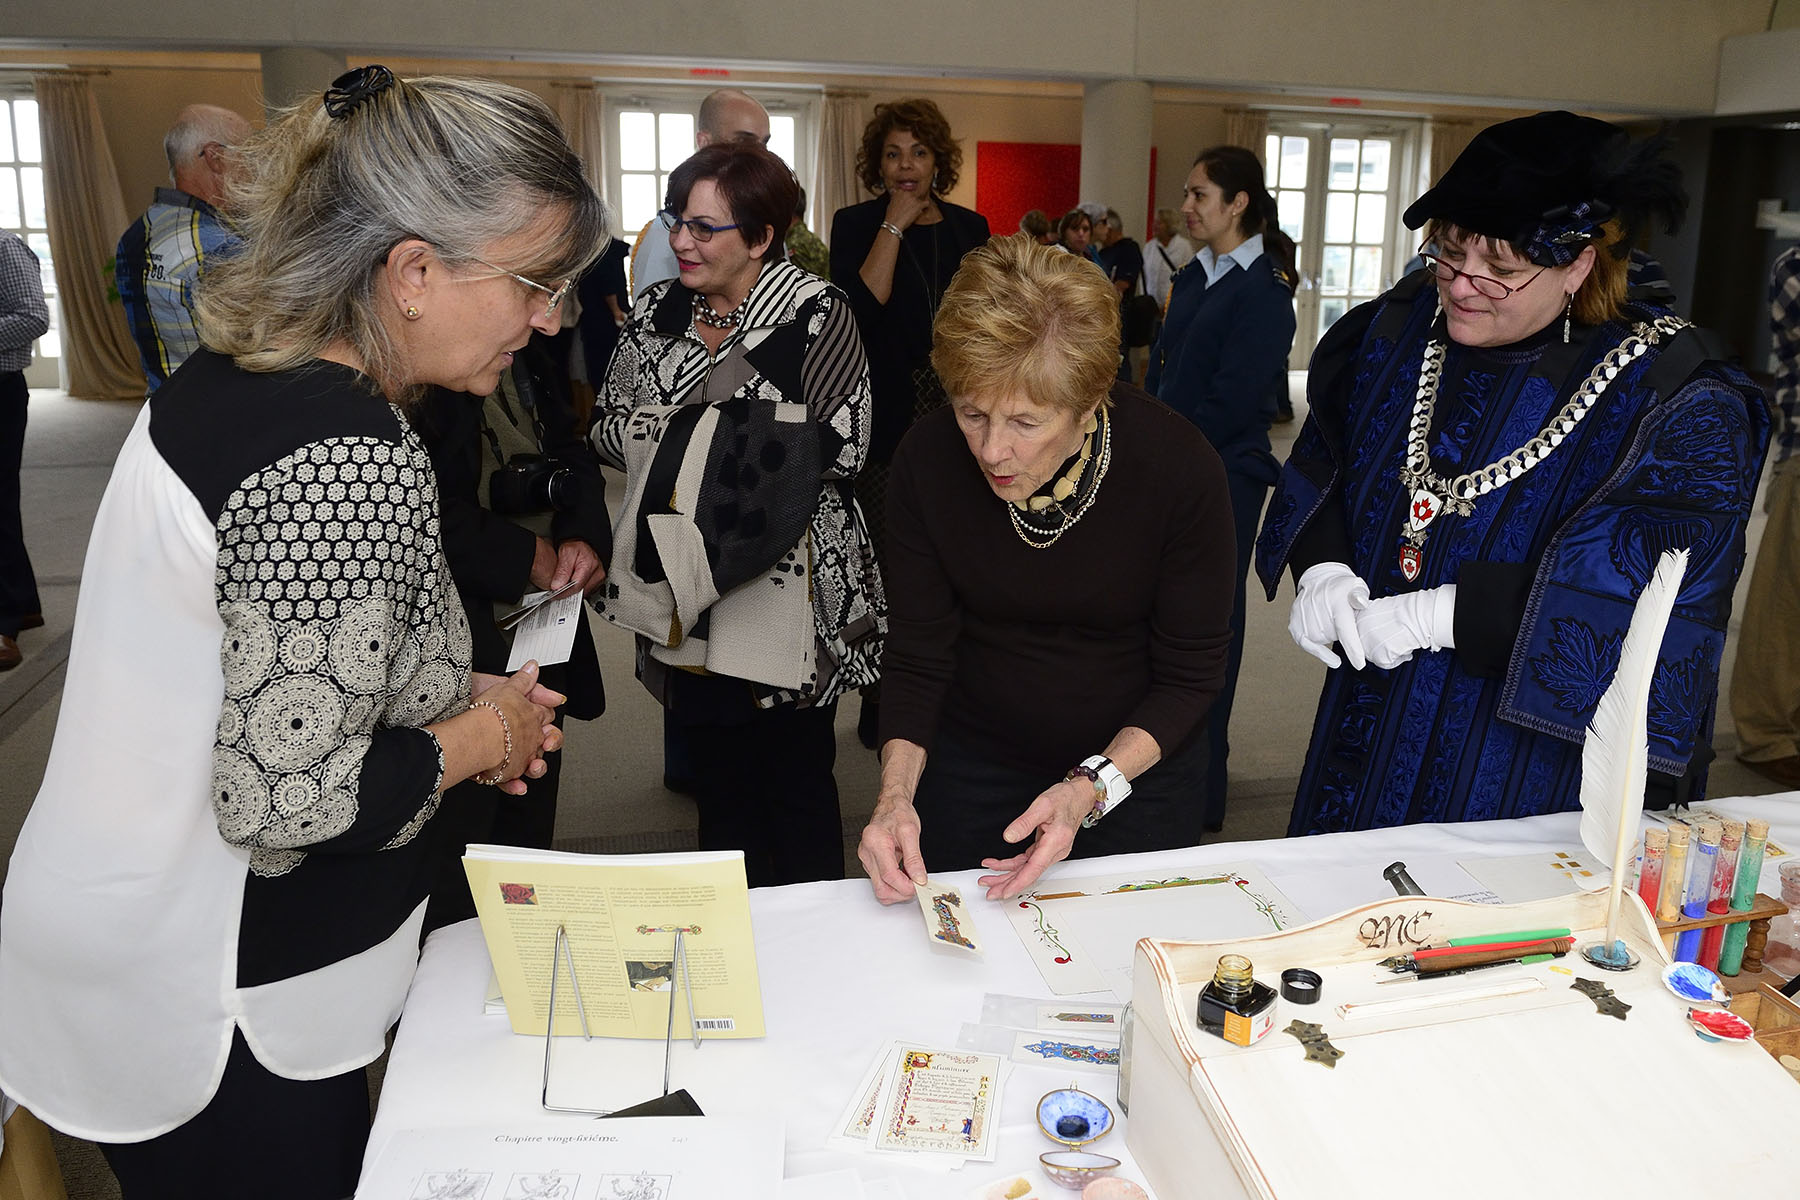 Representatives from the Canadian Heraldic Authority were on hand to showcase coats of arms and emblems. A calligraphy demonstration was also offered by Myriam Chesseboeuf, a local artist.